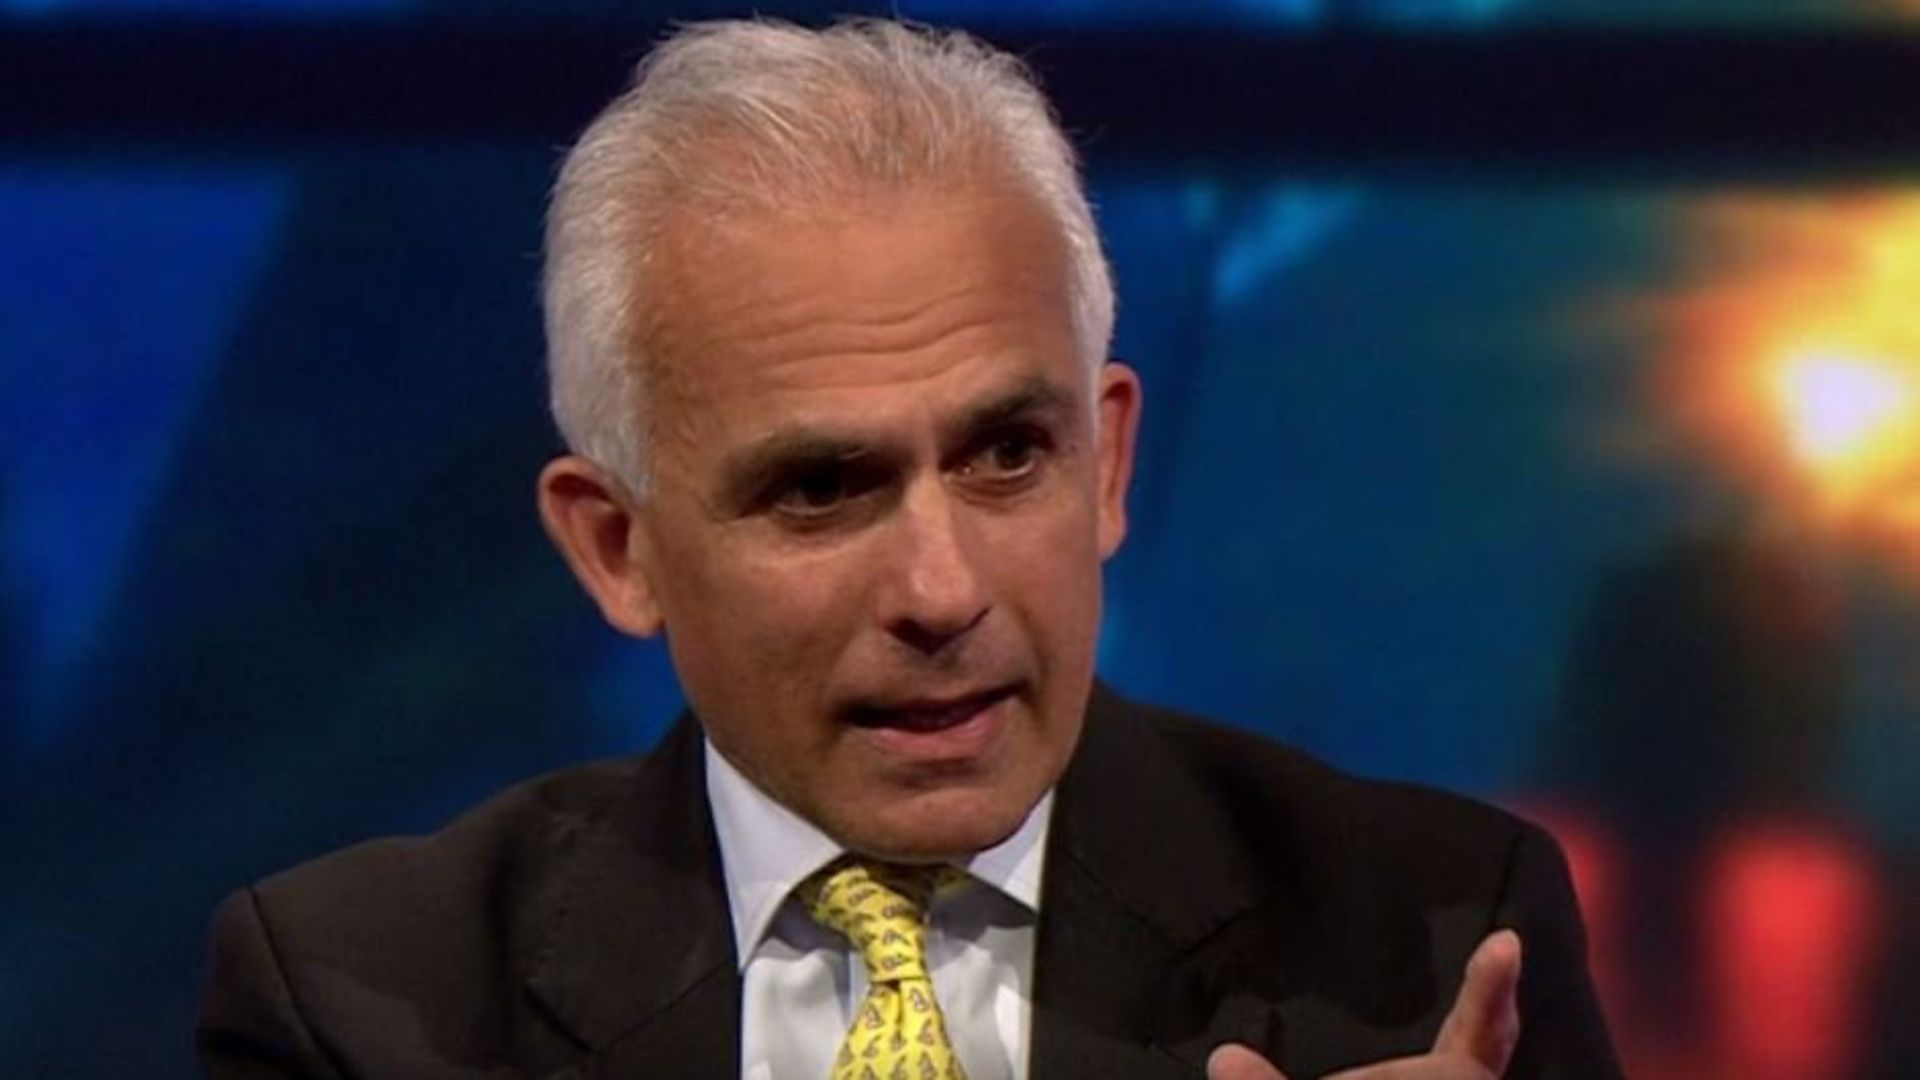 Ex-Brexit Party MEP for London Ben Habib has accused Boris Johnson of backtracking on a pledge to make a clean break from the EU. - Credit: BBC